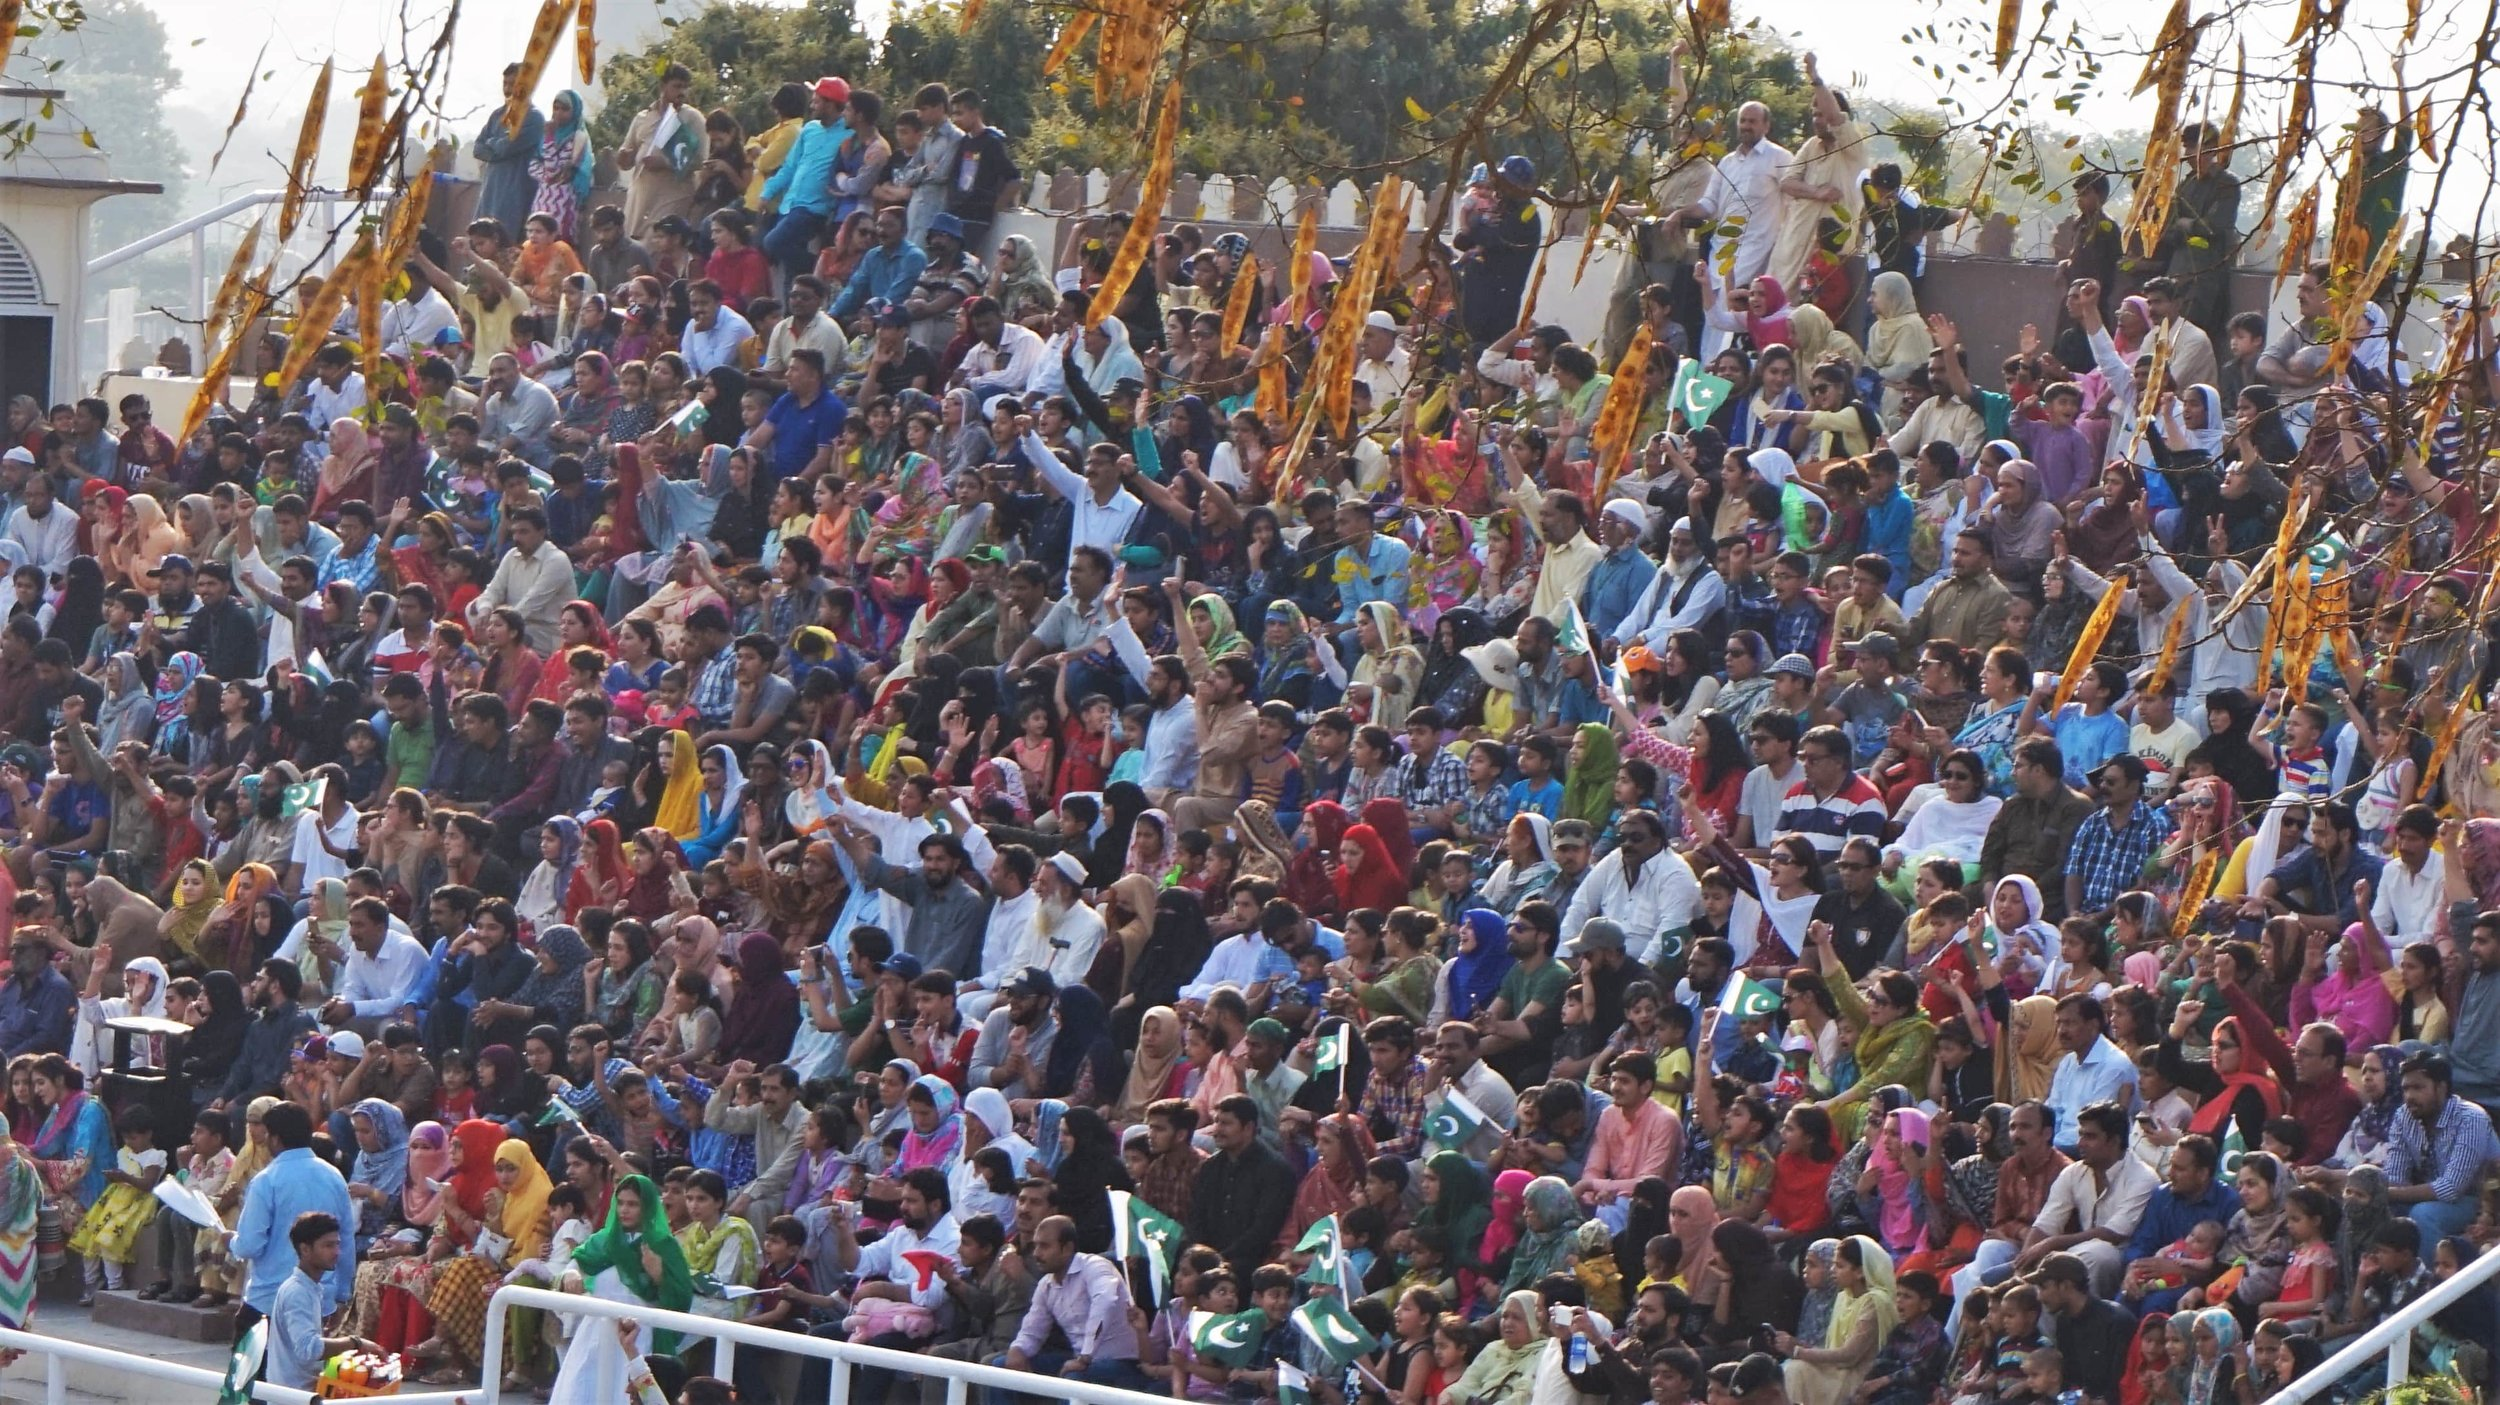 crowds on the pakistan side of the wagah border watching the Wagah border parade closing ceremony.